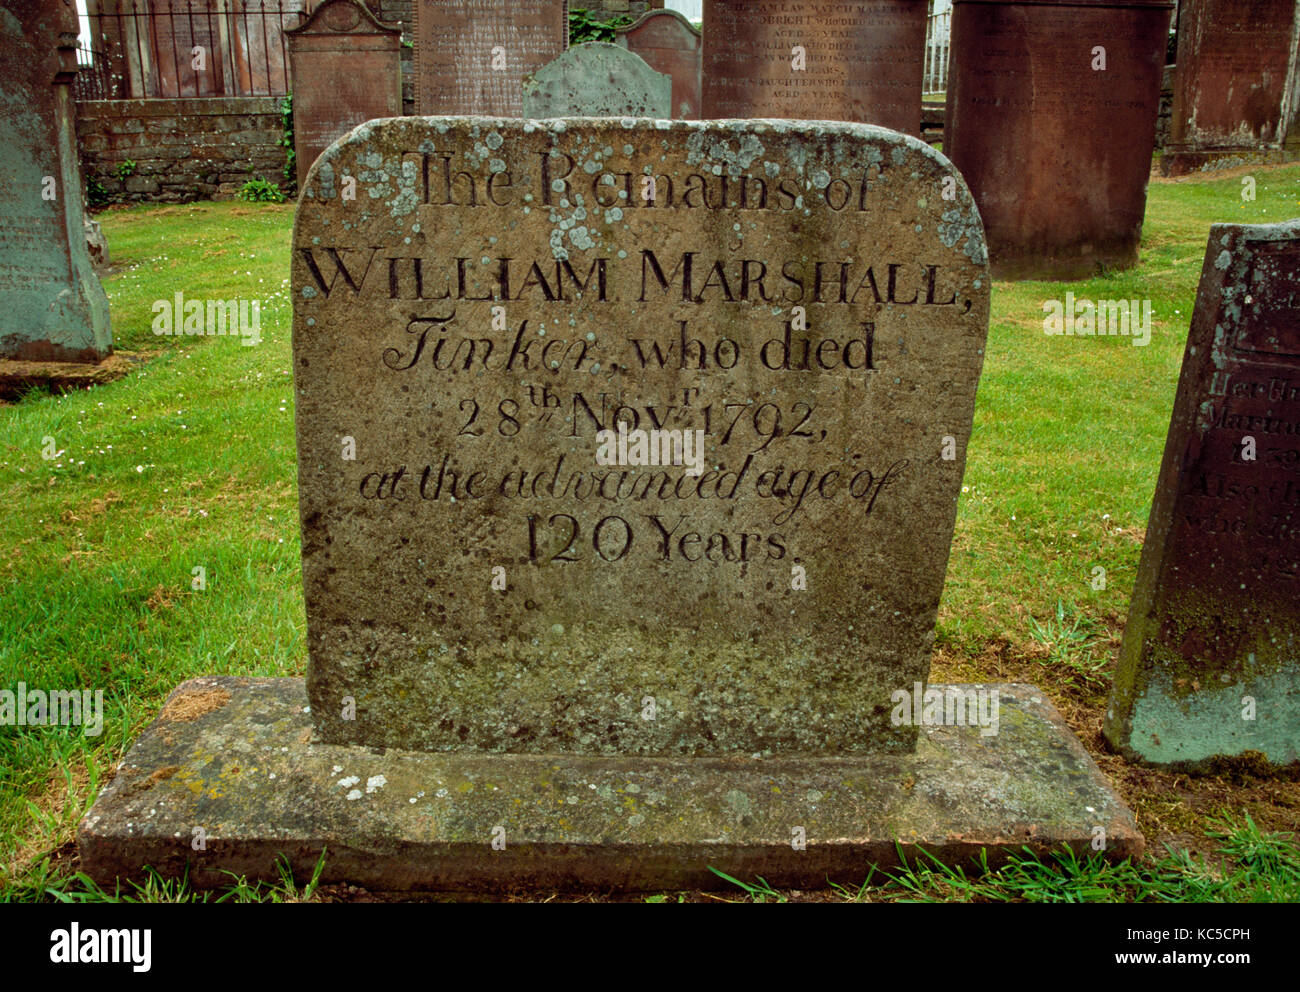 Headstone to 'William Marshall, Tinker, who died 28th November 1792, at the advanced age of 120 Years'. - Stock Image